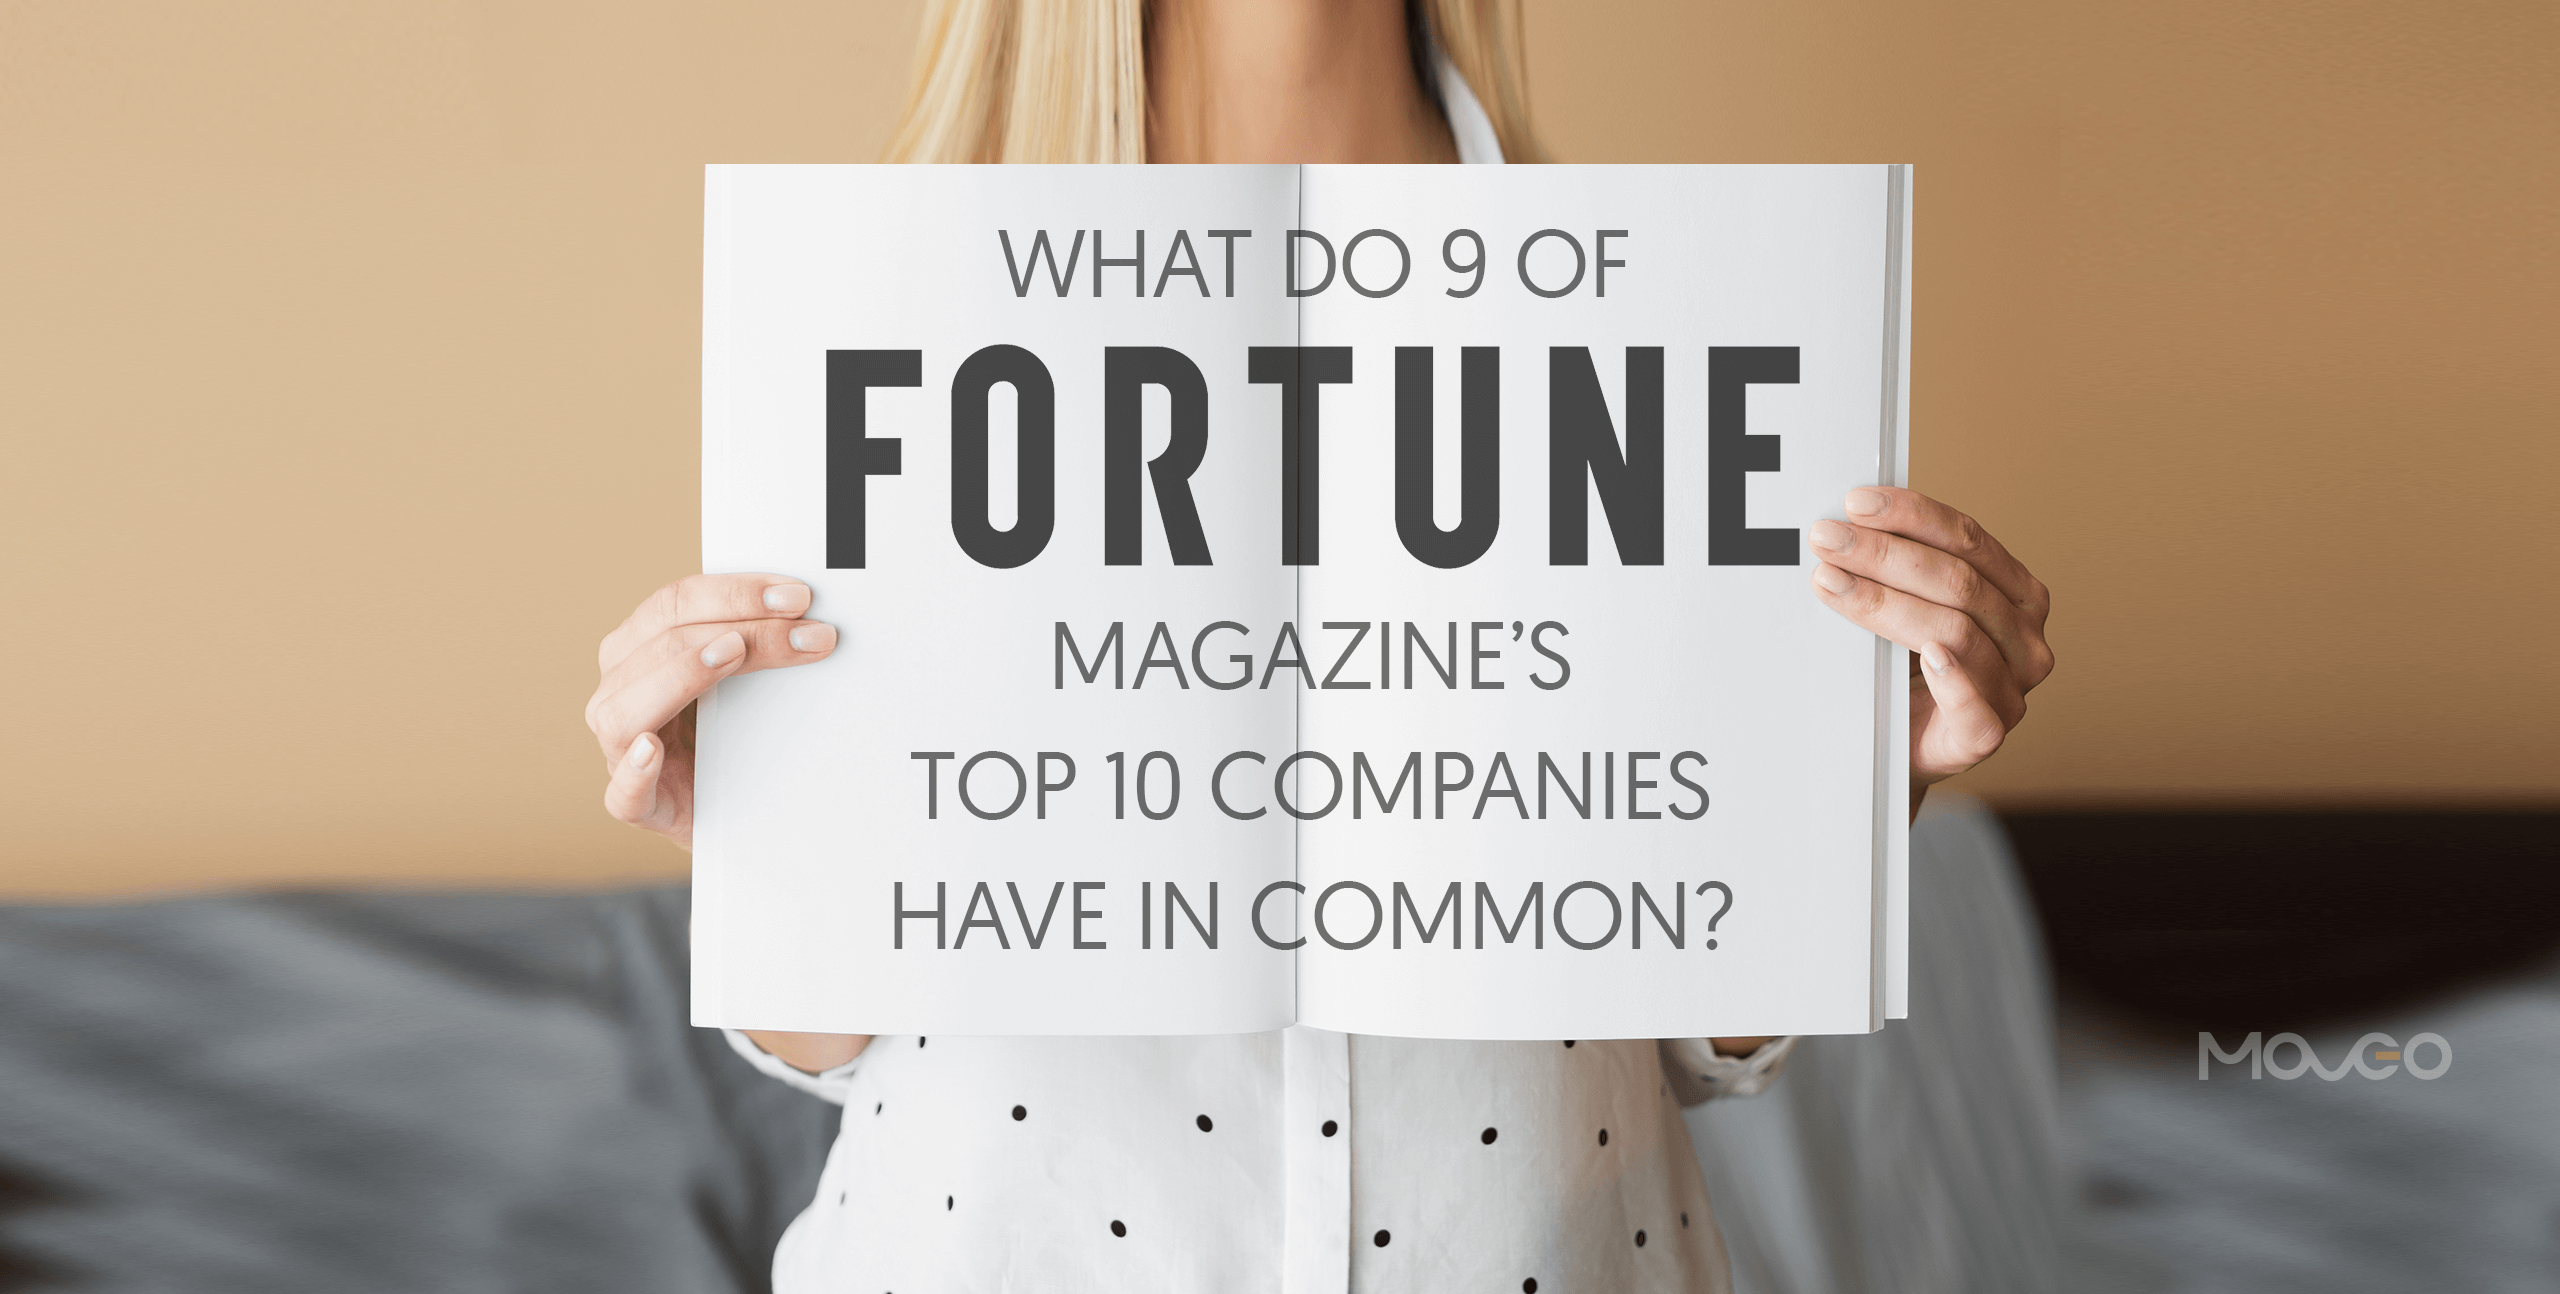 What do 9 of Fortune Magazine's Top 10 Companies have in common?